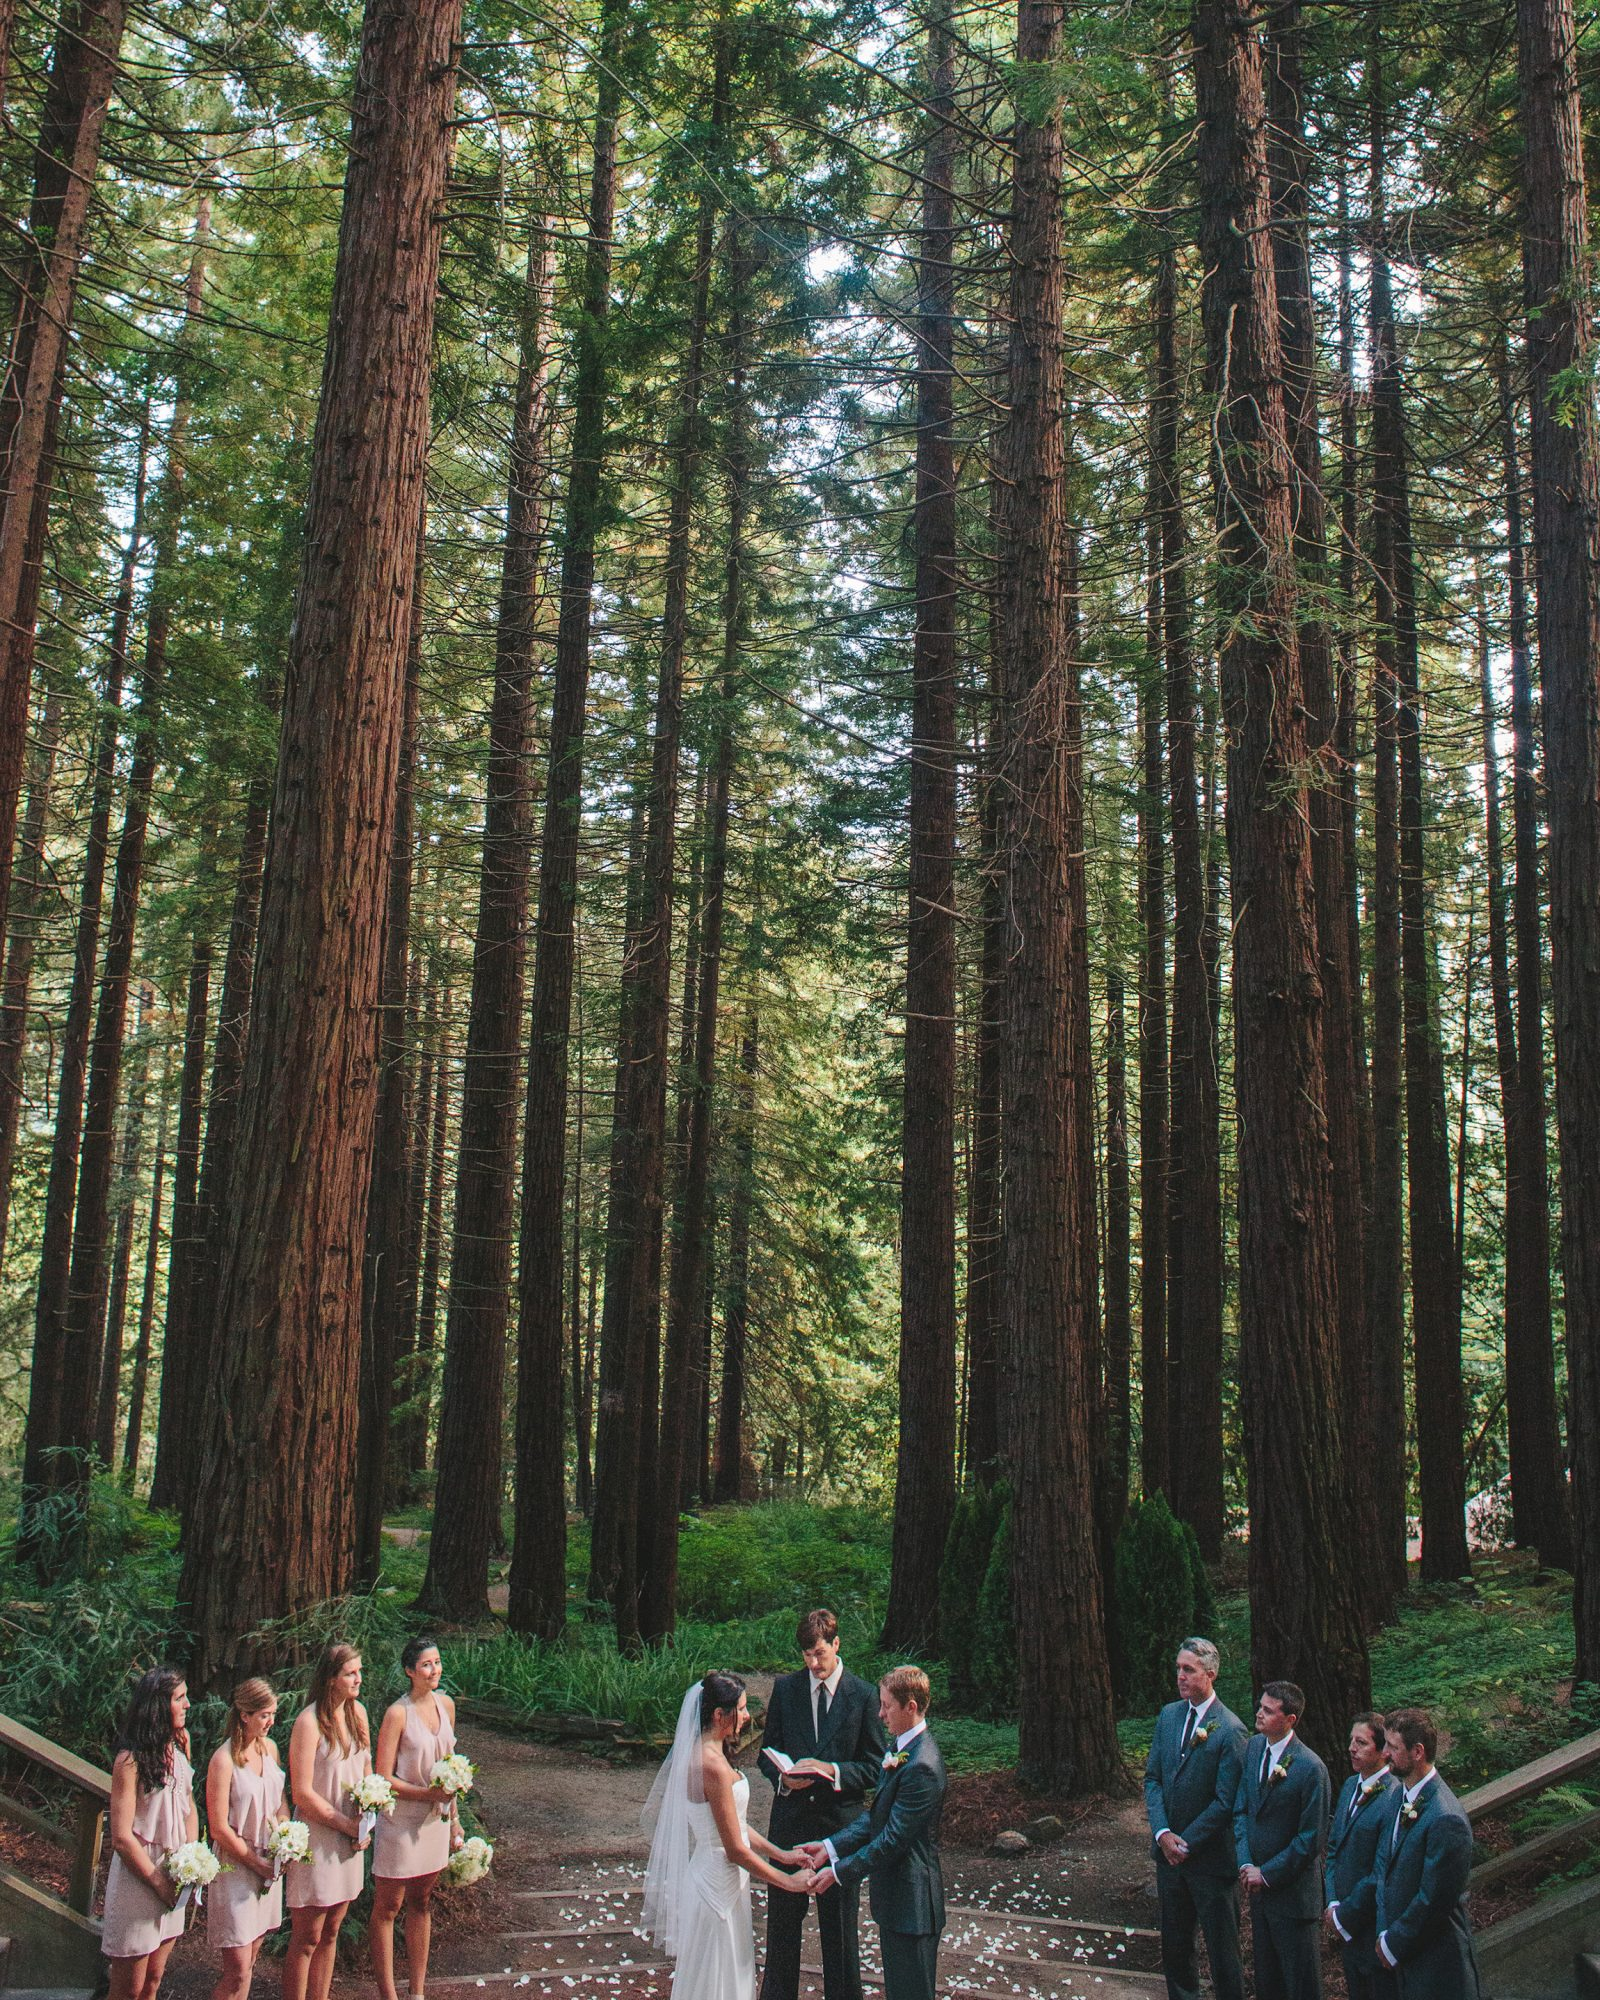 collegeweddingvenues-ucberkeley-0615.jpg